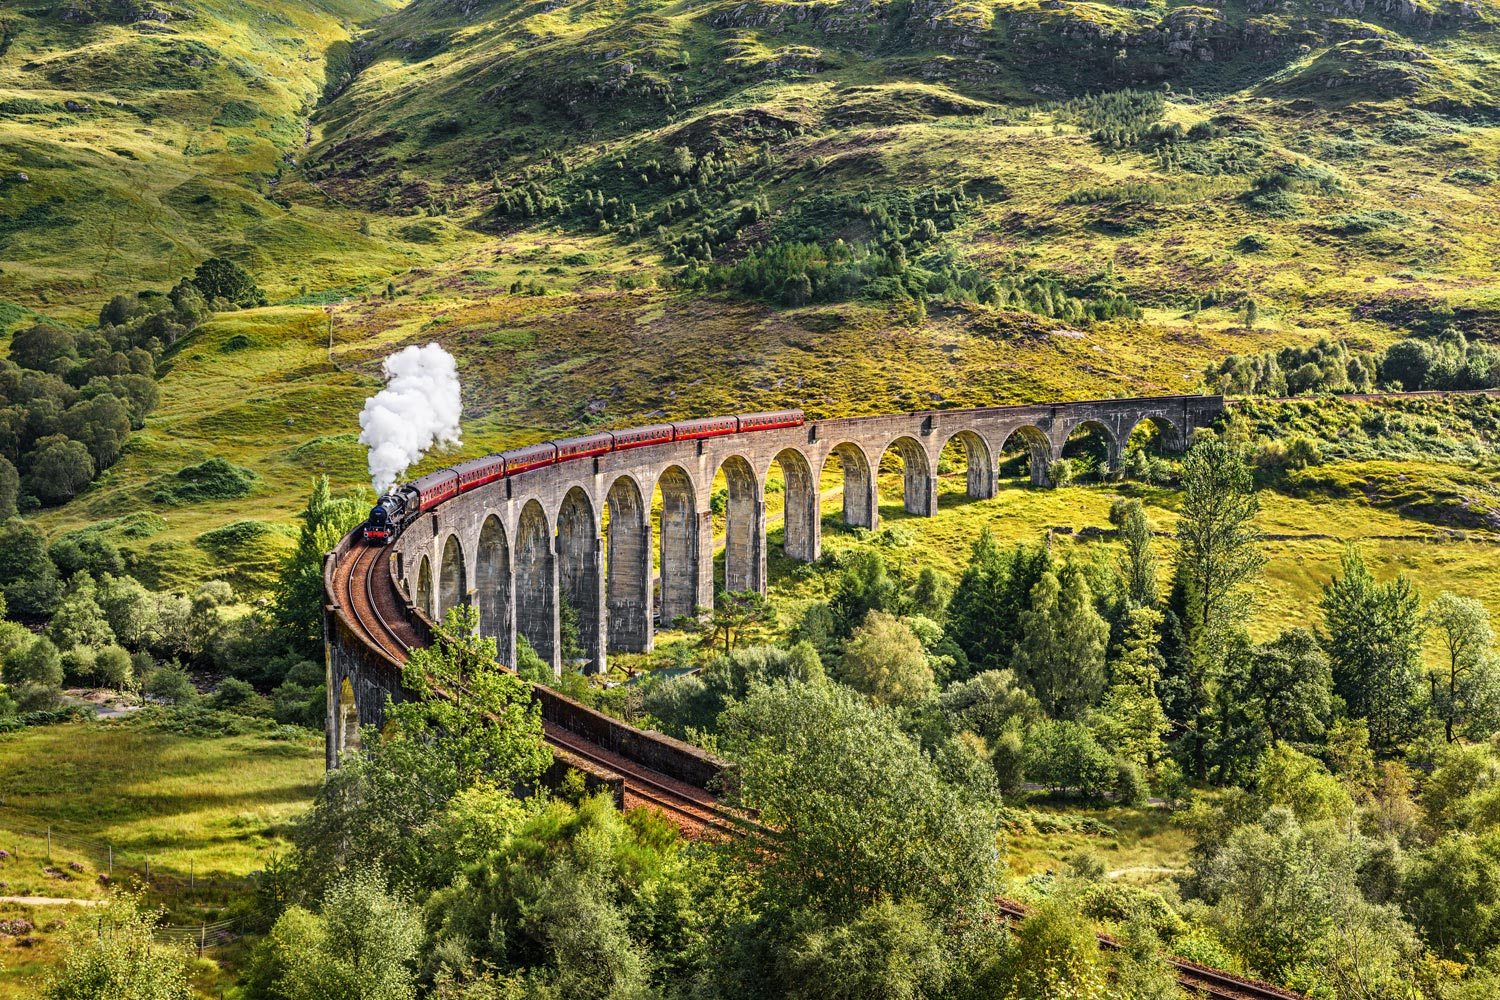 Glenfinnan Viaduct, Inverness-shire